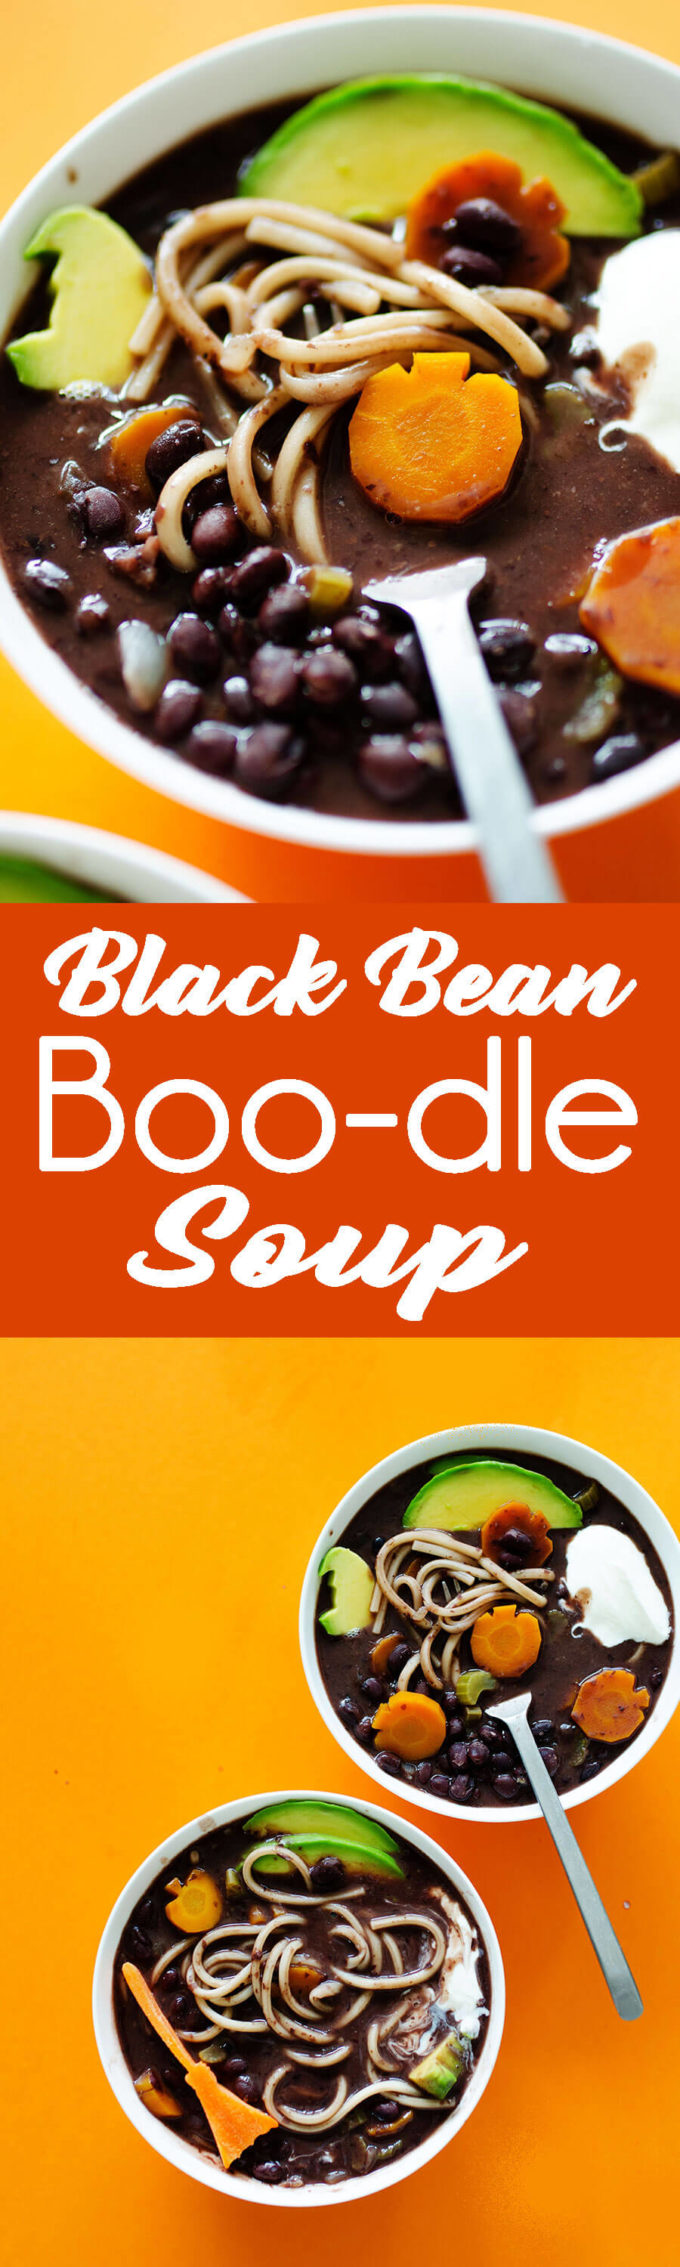 """Black Blean Noodle Soup with fun halloween shapes to make it """"scary good"""" soup for Halloween."""